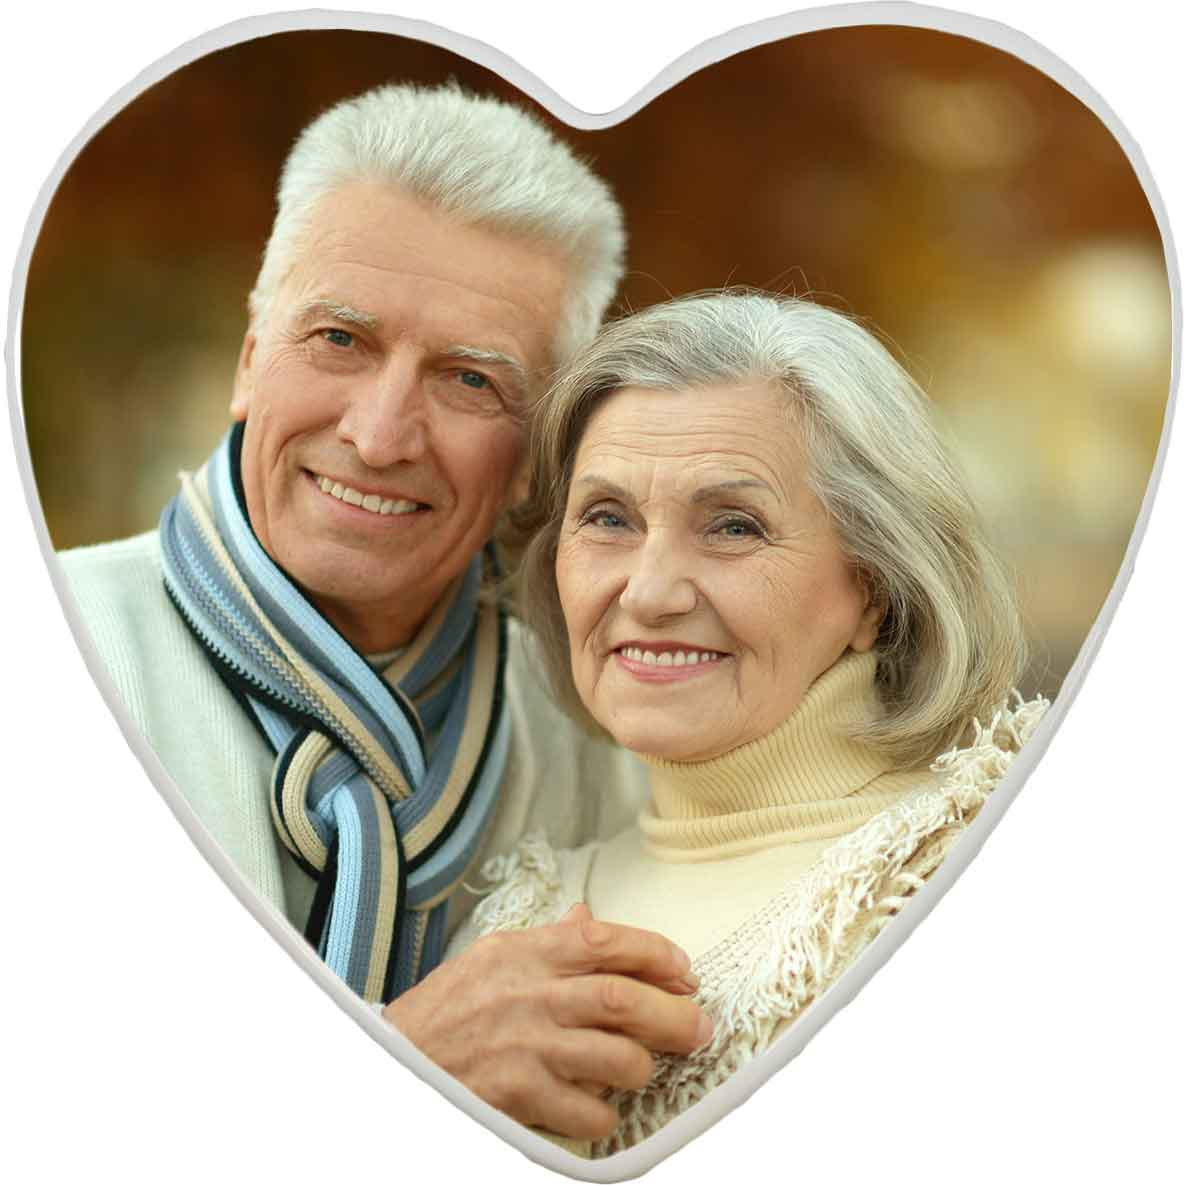 Pictures for Headstones | Heart Ceramic Headstone Pictures